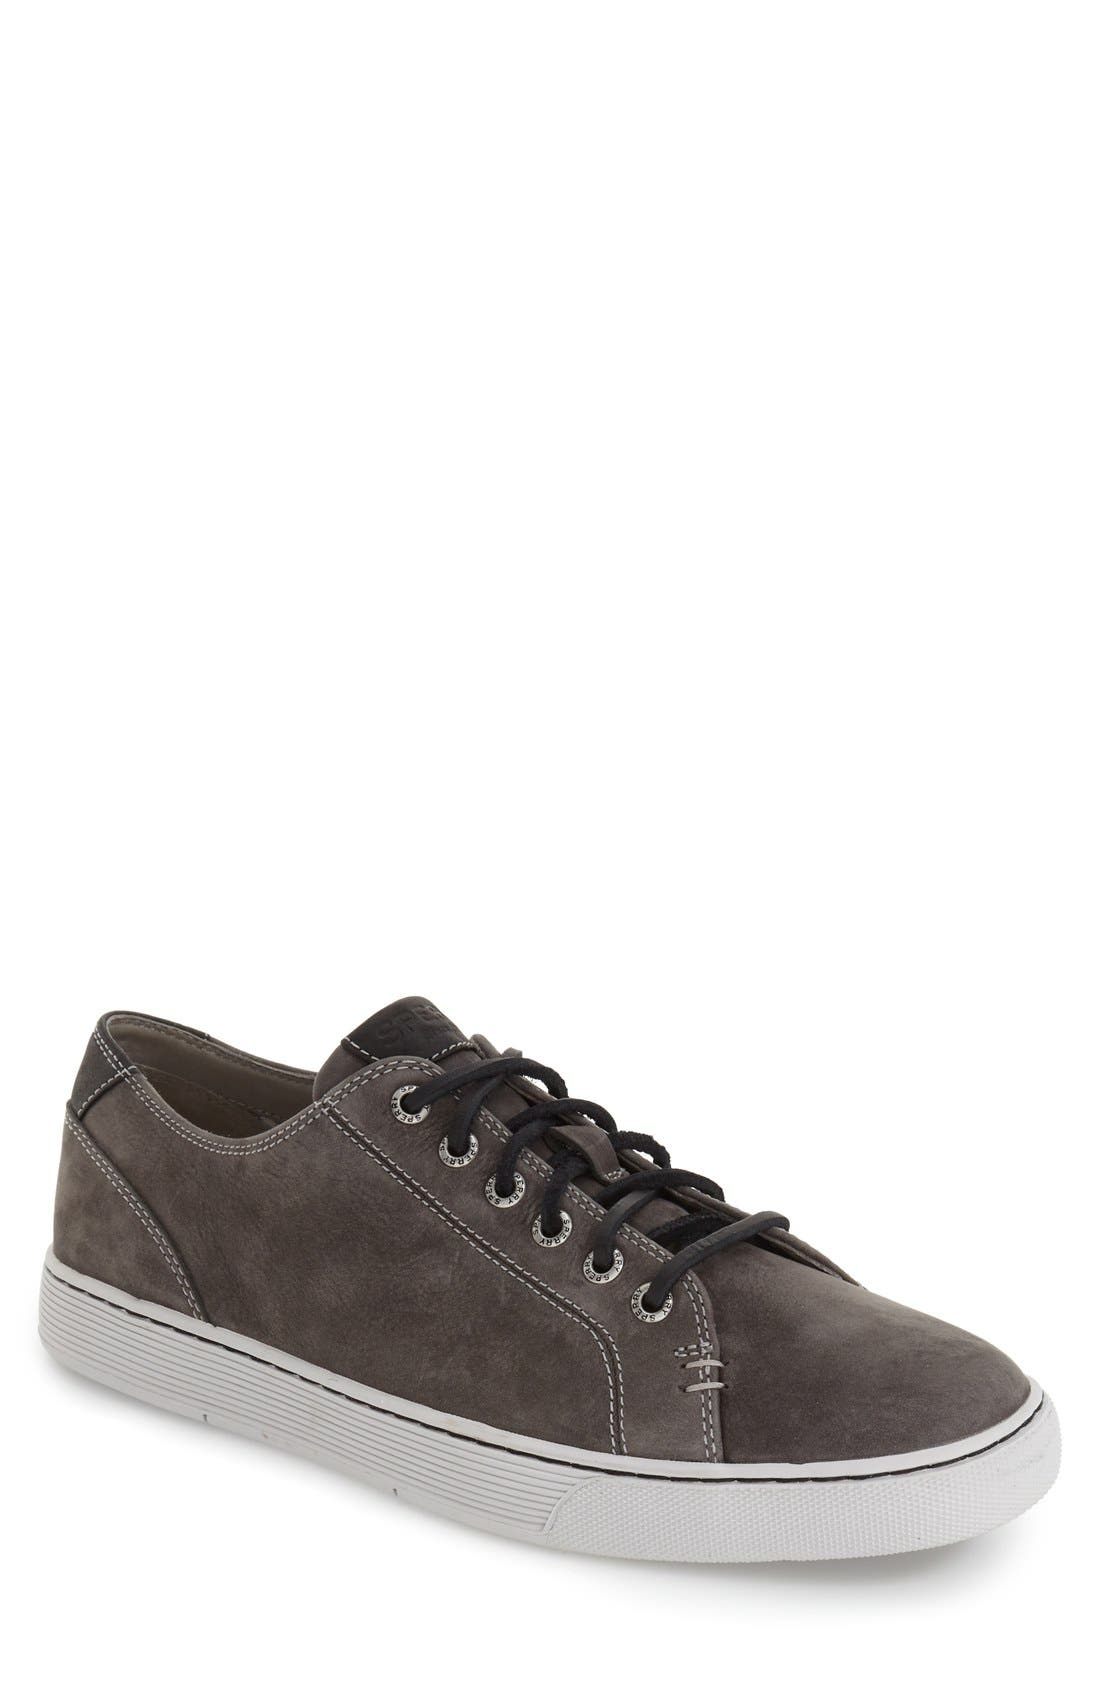 SPERRY Gold Cup LLT Sneaker, Main, color, GREY SUEDE